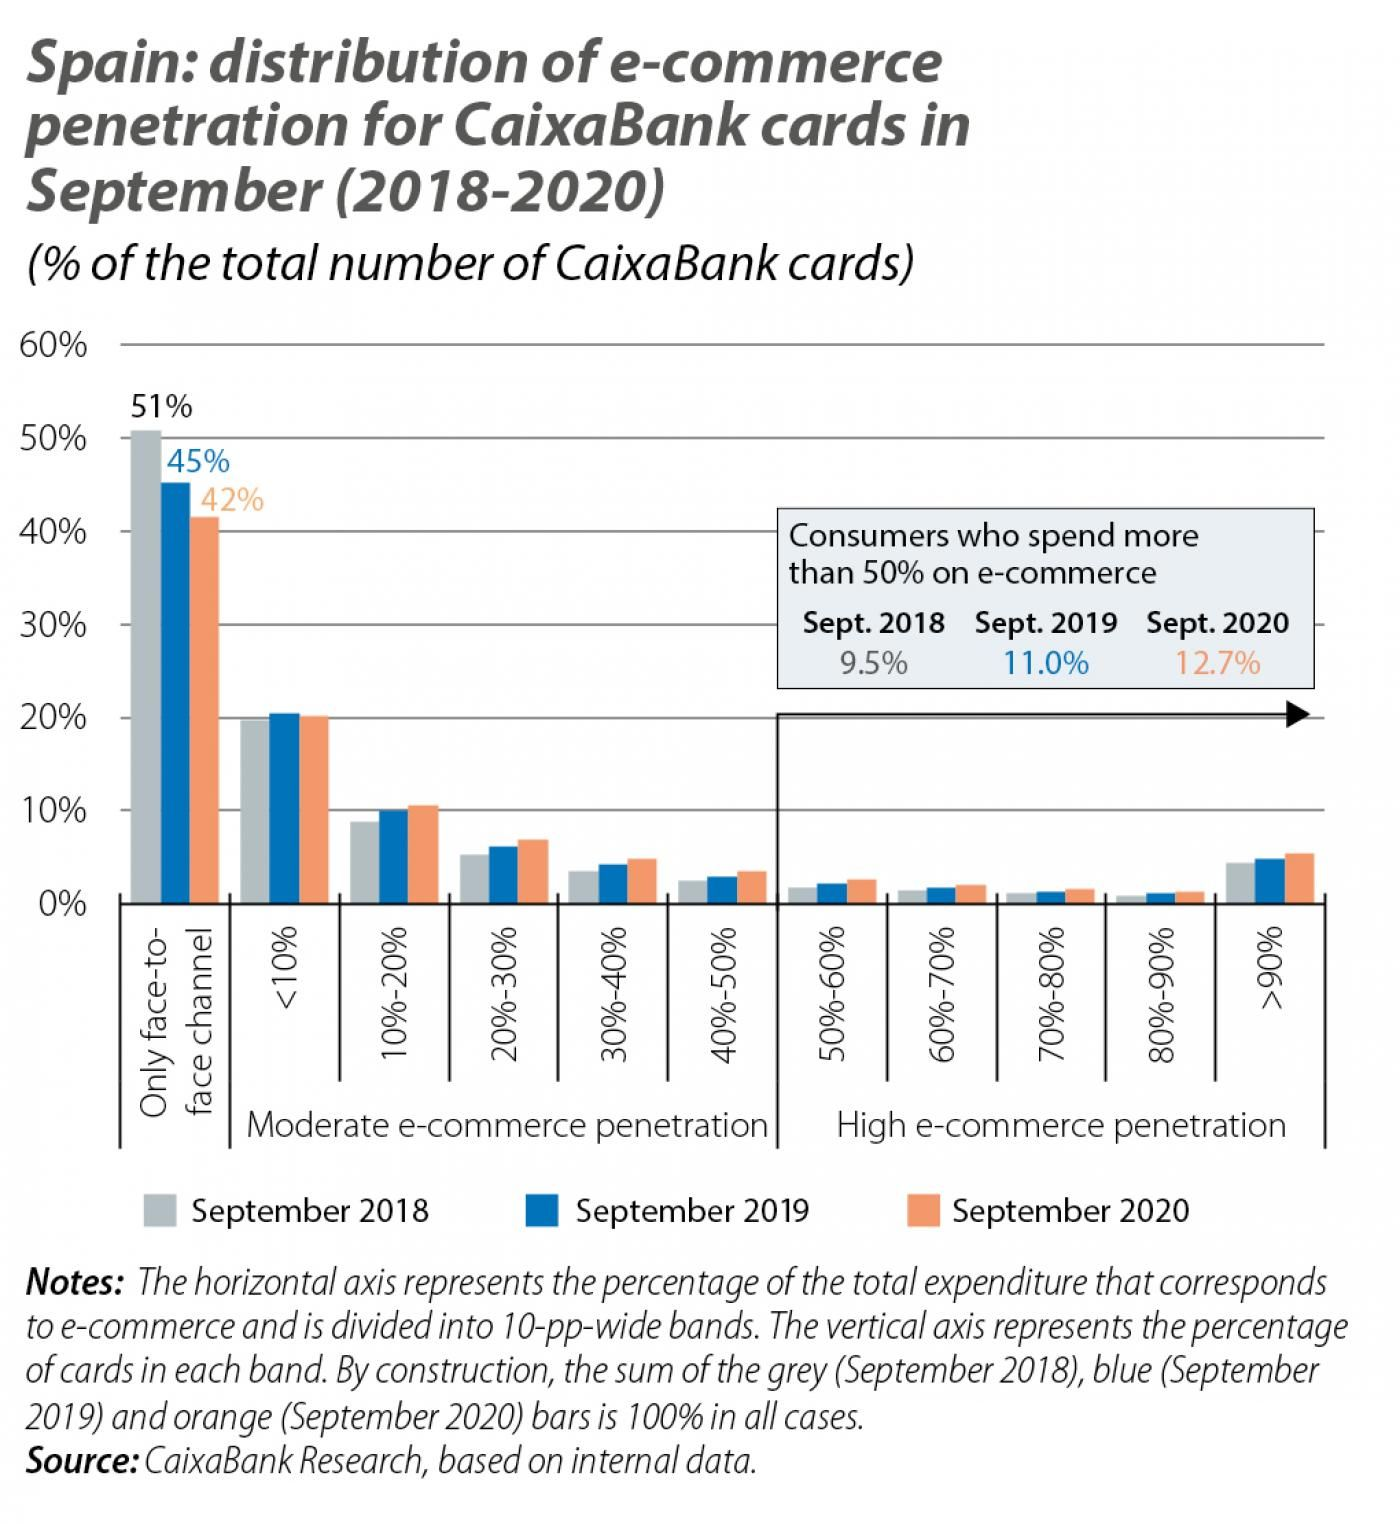 Spain: distribution of e-commerce penetration for CaixaBank cards in September (2018-2020)